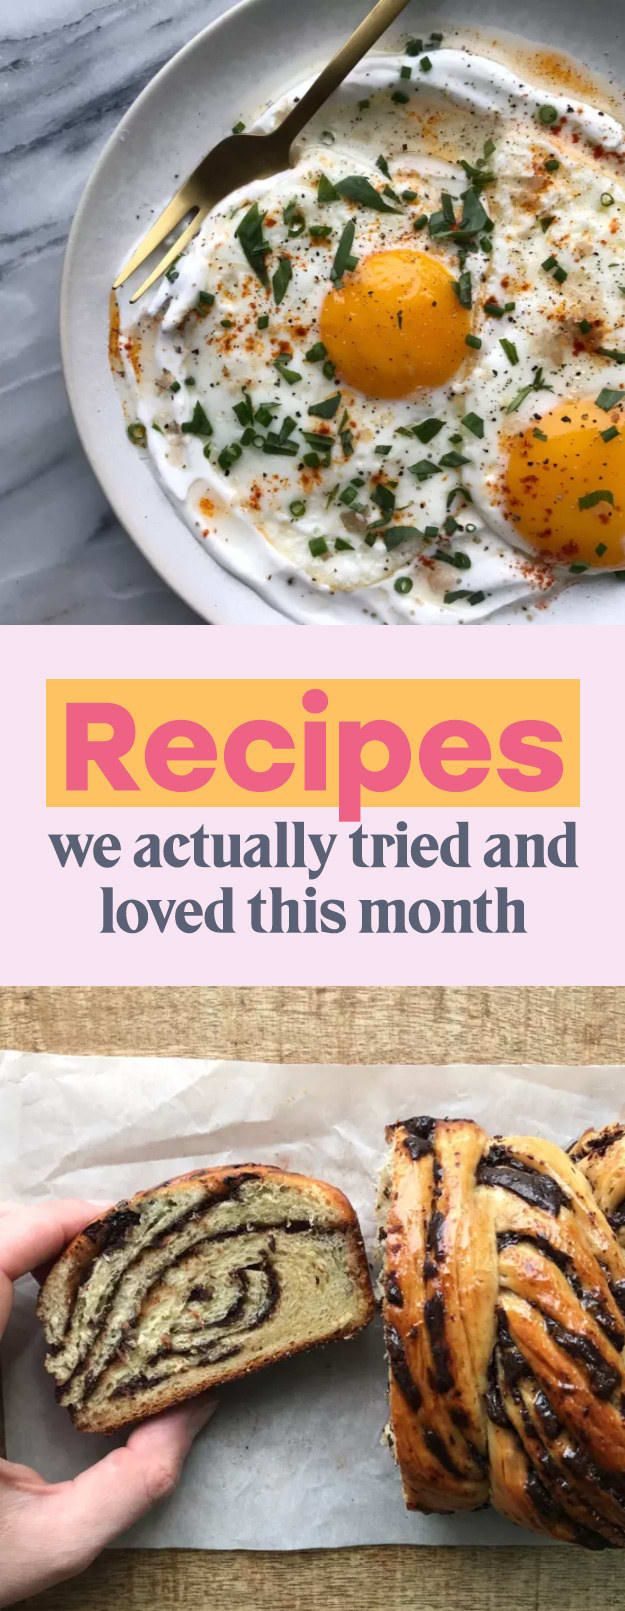 14 Tried And True Recipes You Should Make This Month